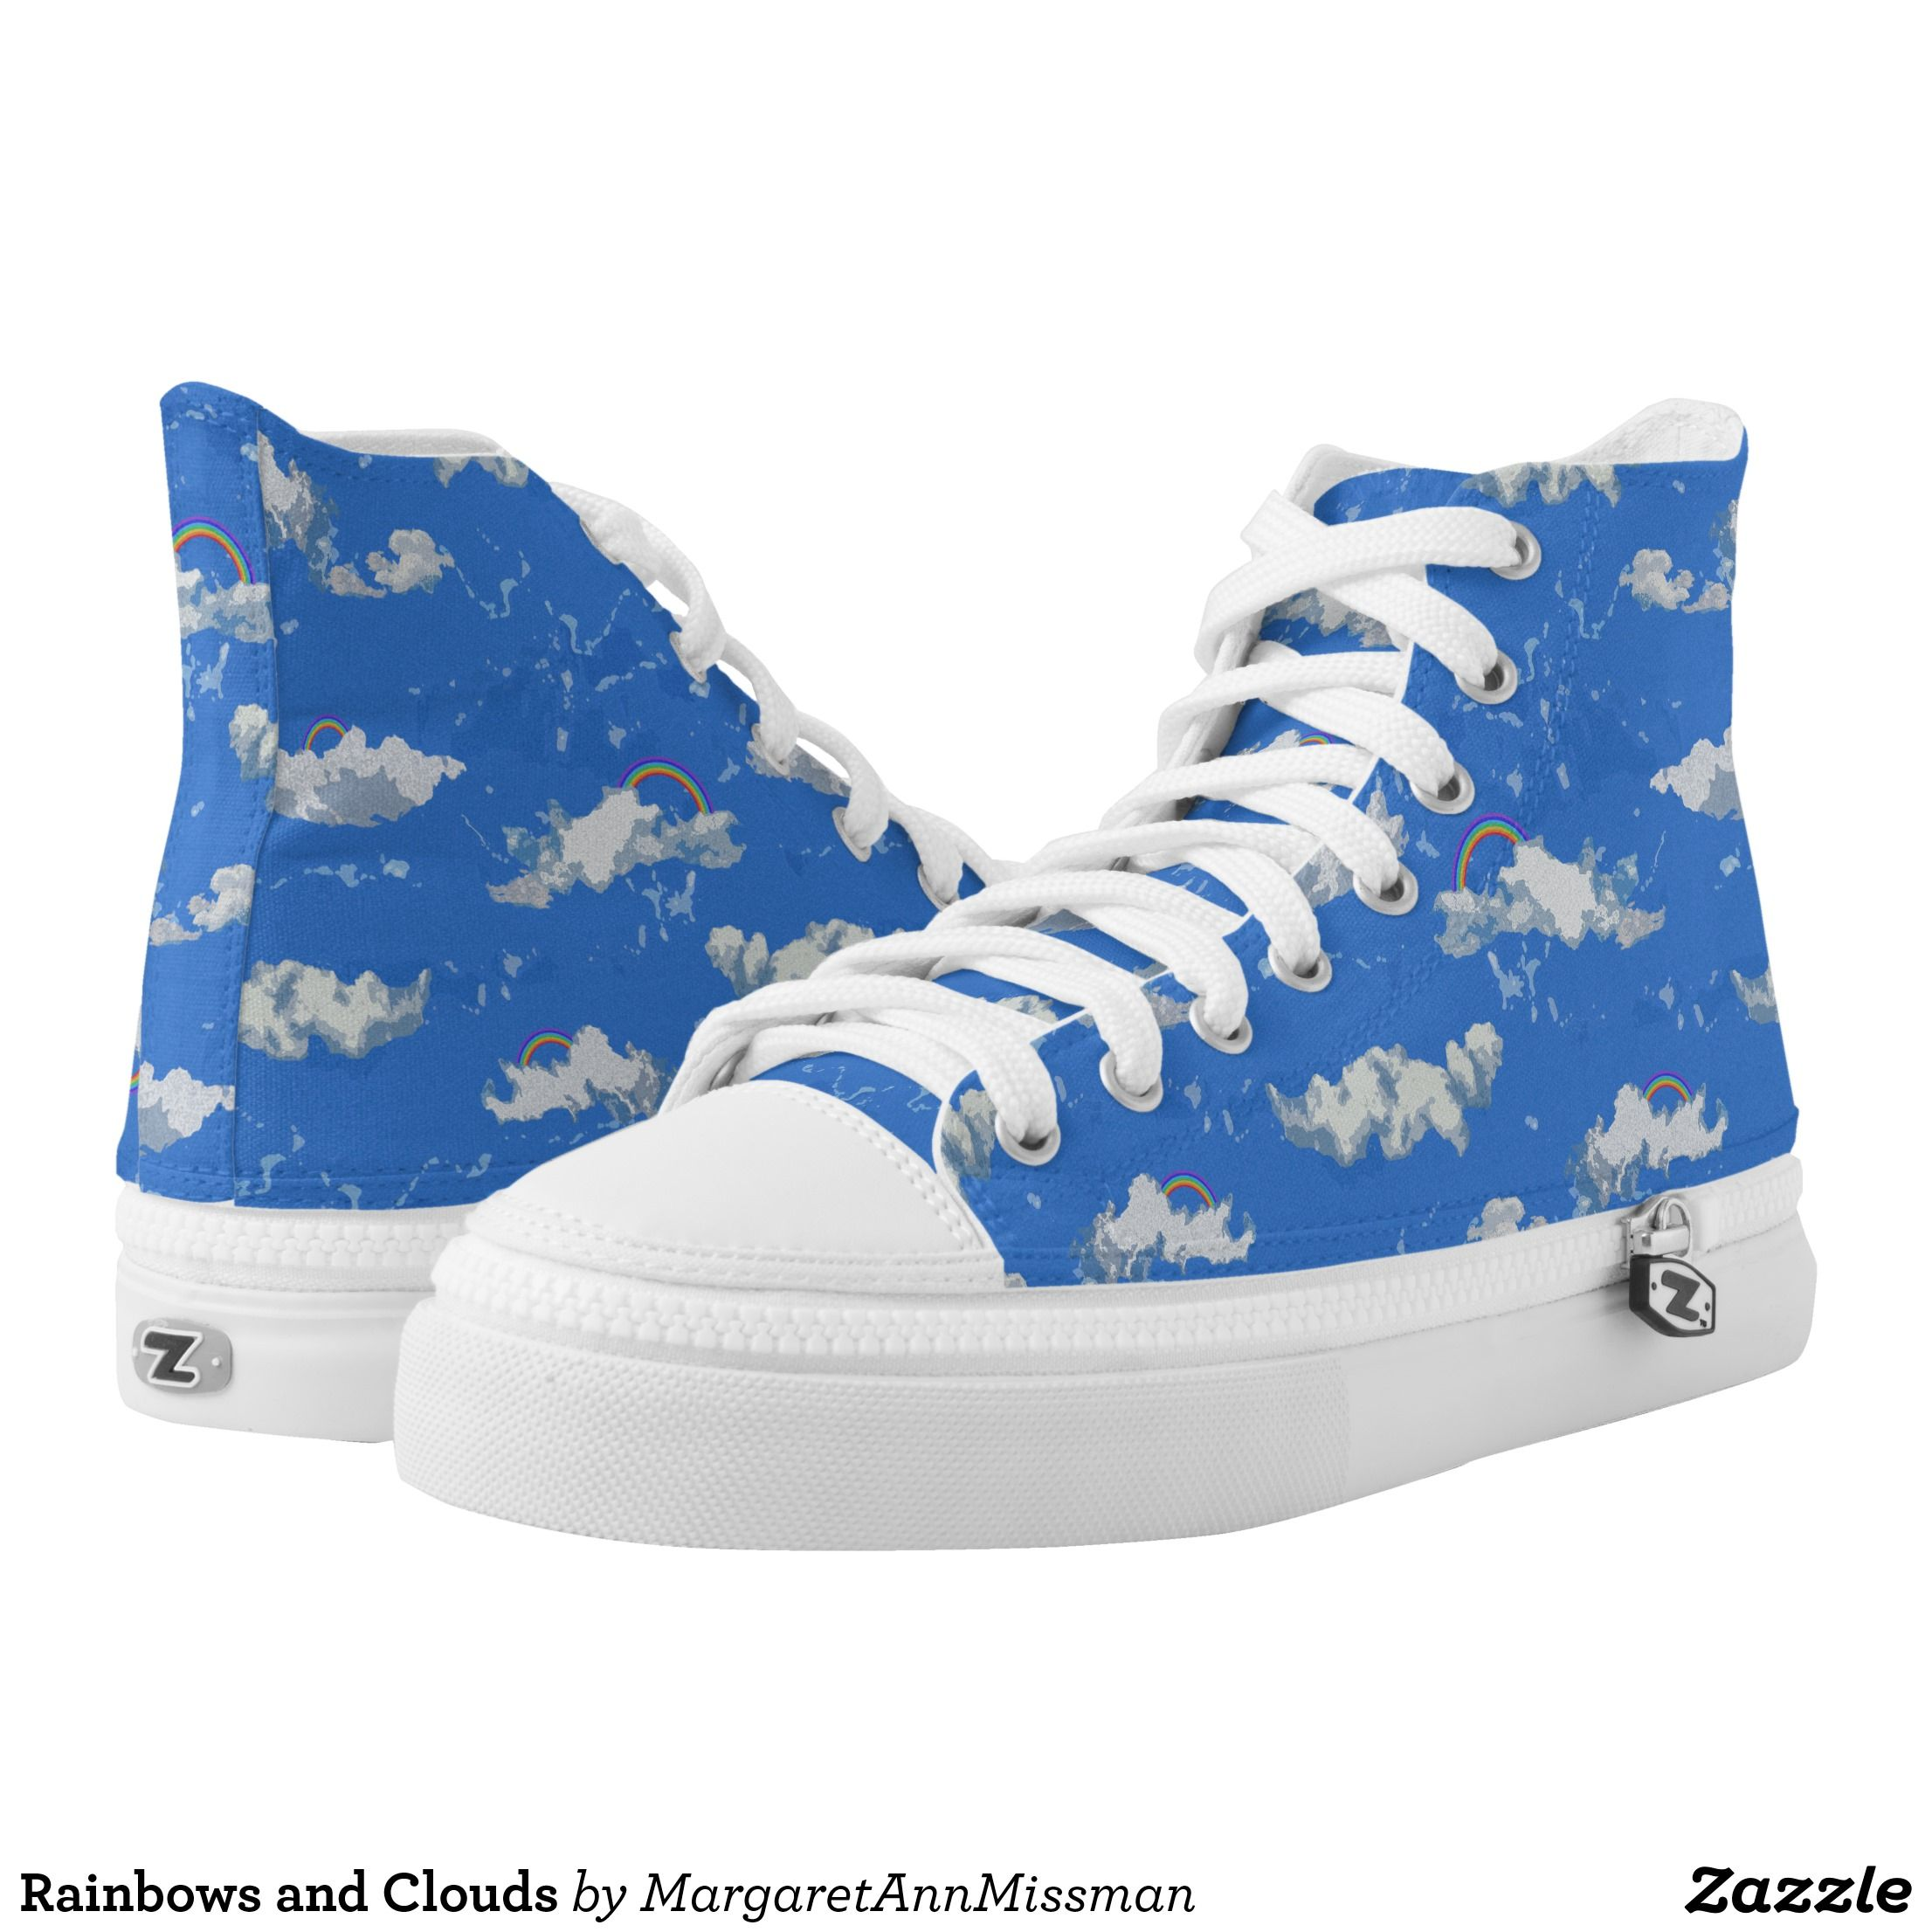 250358f25f8e Rainbows and Clouds High-Top Sneakers - Canvas-Top Rubber-Sole Athletic  Shoes By Talented Fashion And Graphic Designers - #shoes #sneakers  #footwear ...